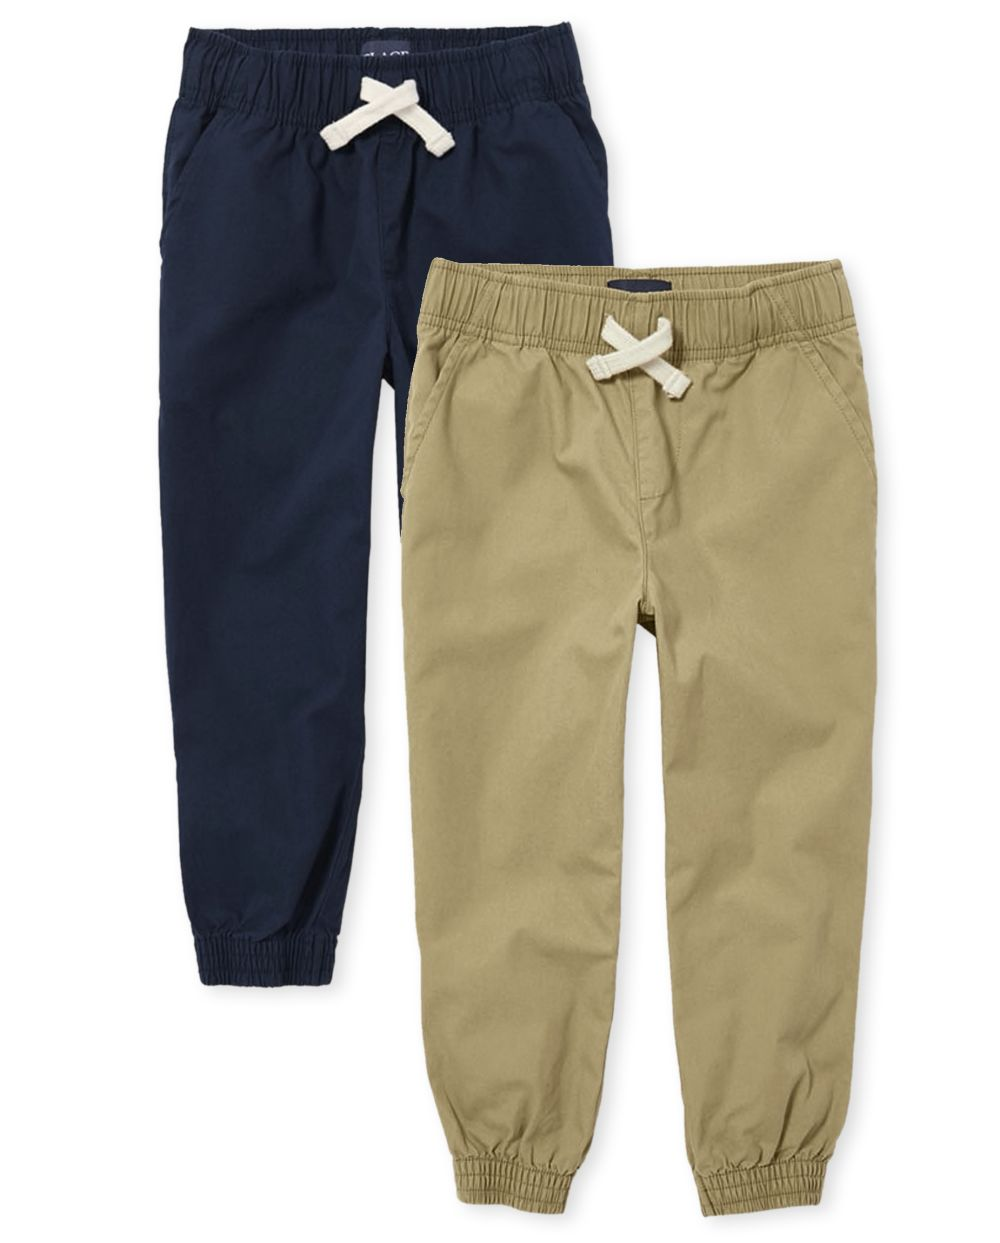 Boys Boys Uniform Pull On Jogger Pants 2-Pack - Multi - The Children's Place